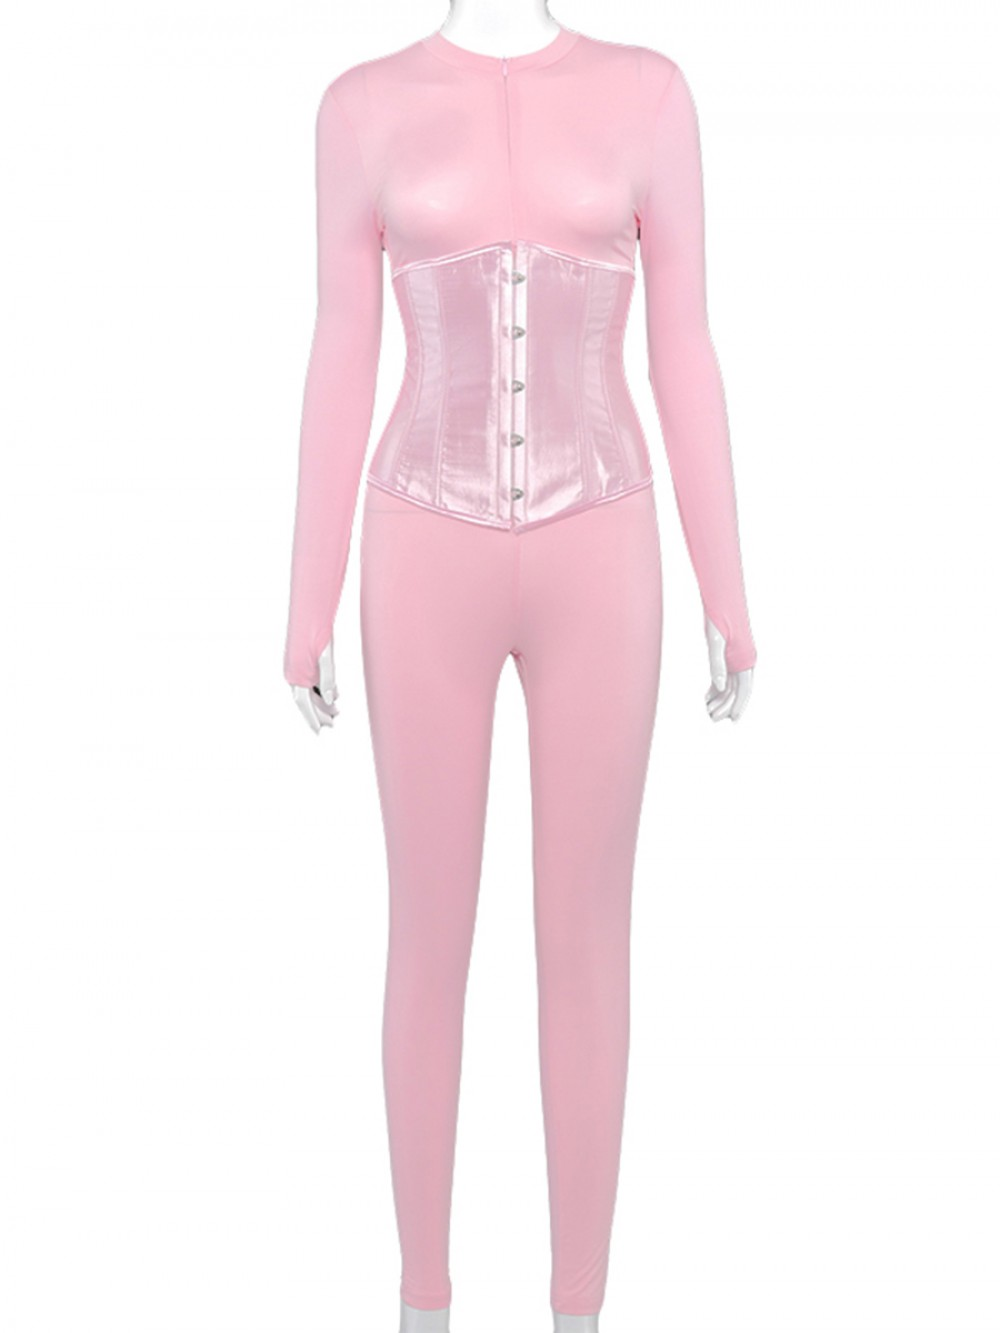 Pink Jumpsuit Corset Suit Zip Neck With Thumbhole Stunning Style